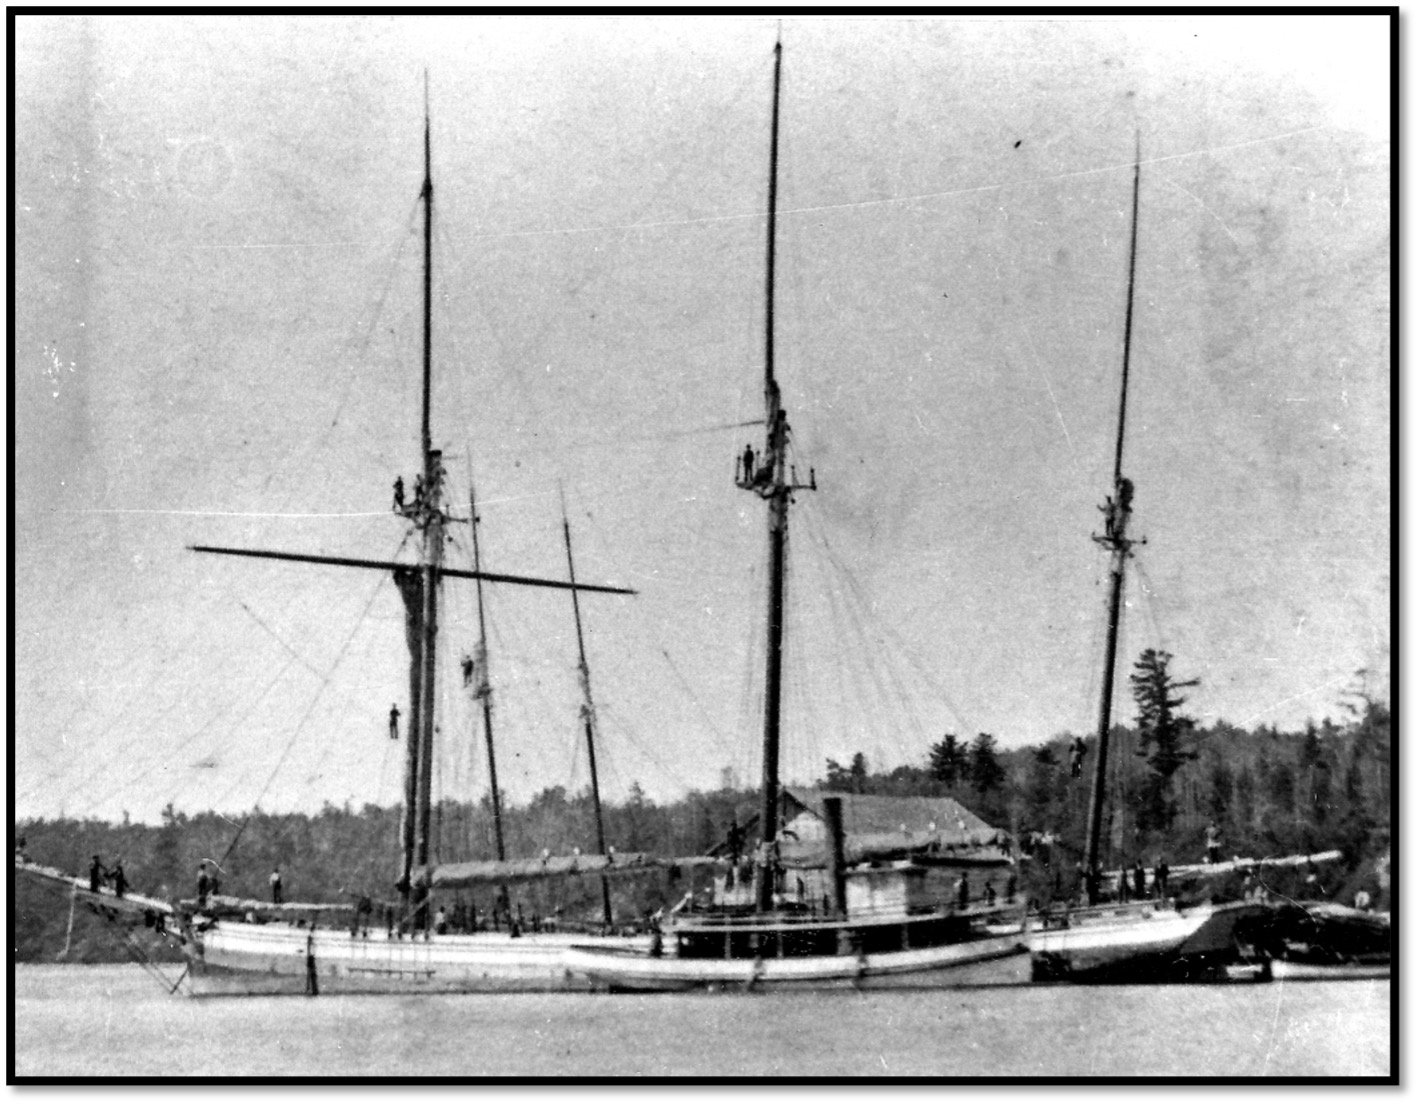 Tug Favorite and Schooner-Scow Maple Leaf RD Pikes dock near north of Pikes Creek BHA 80.34.6